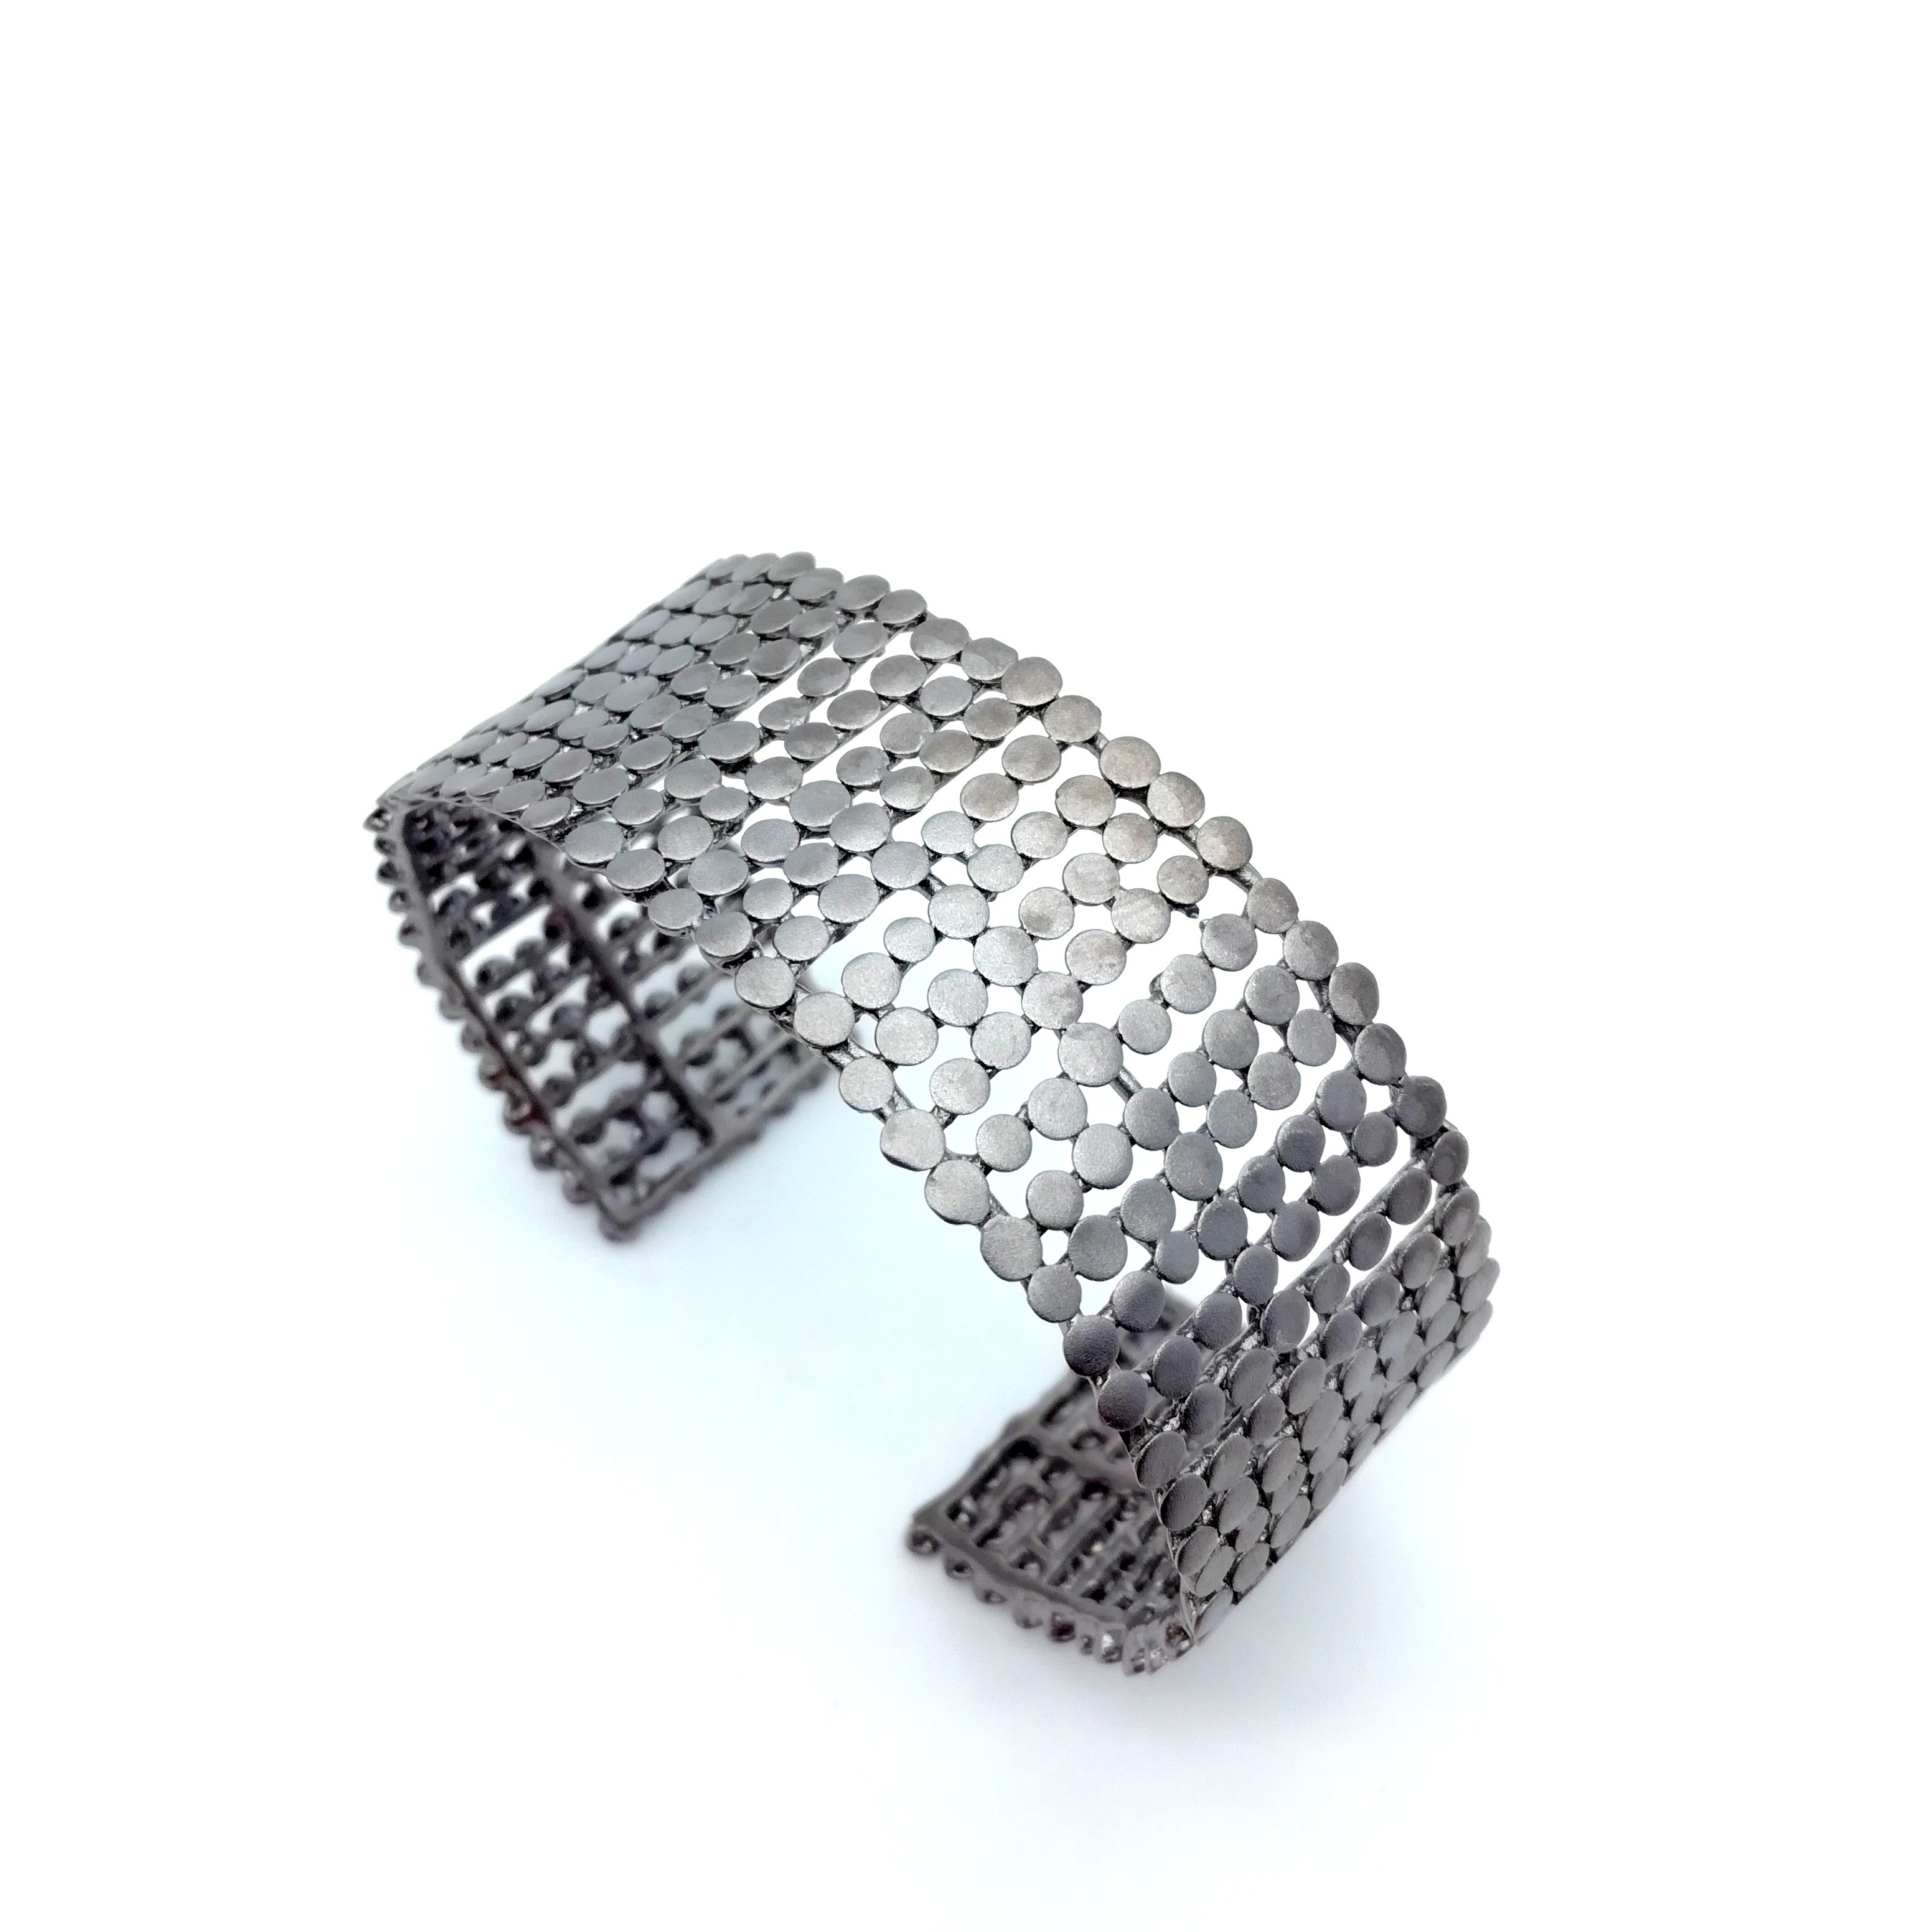 Silver bracelet 925 rhodium plated with tourmalines